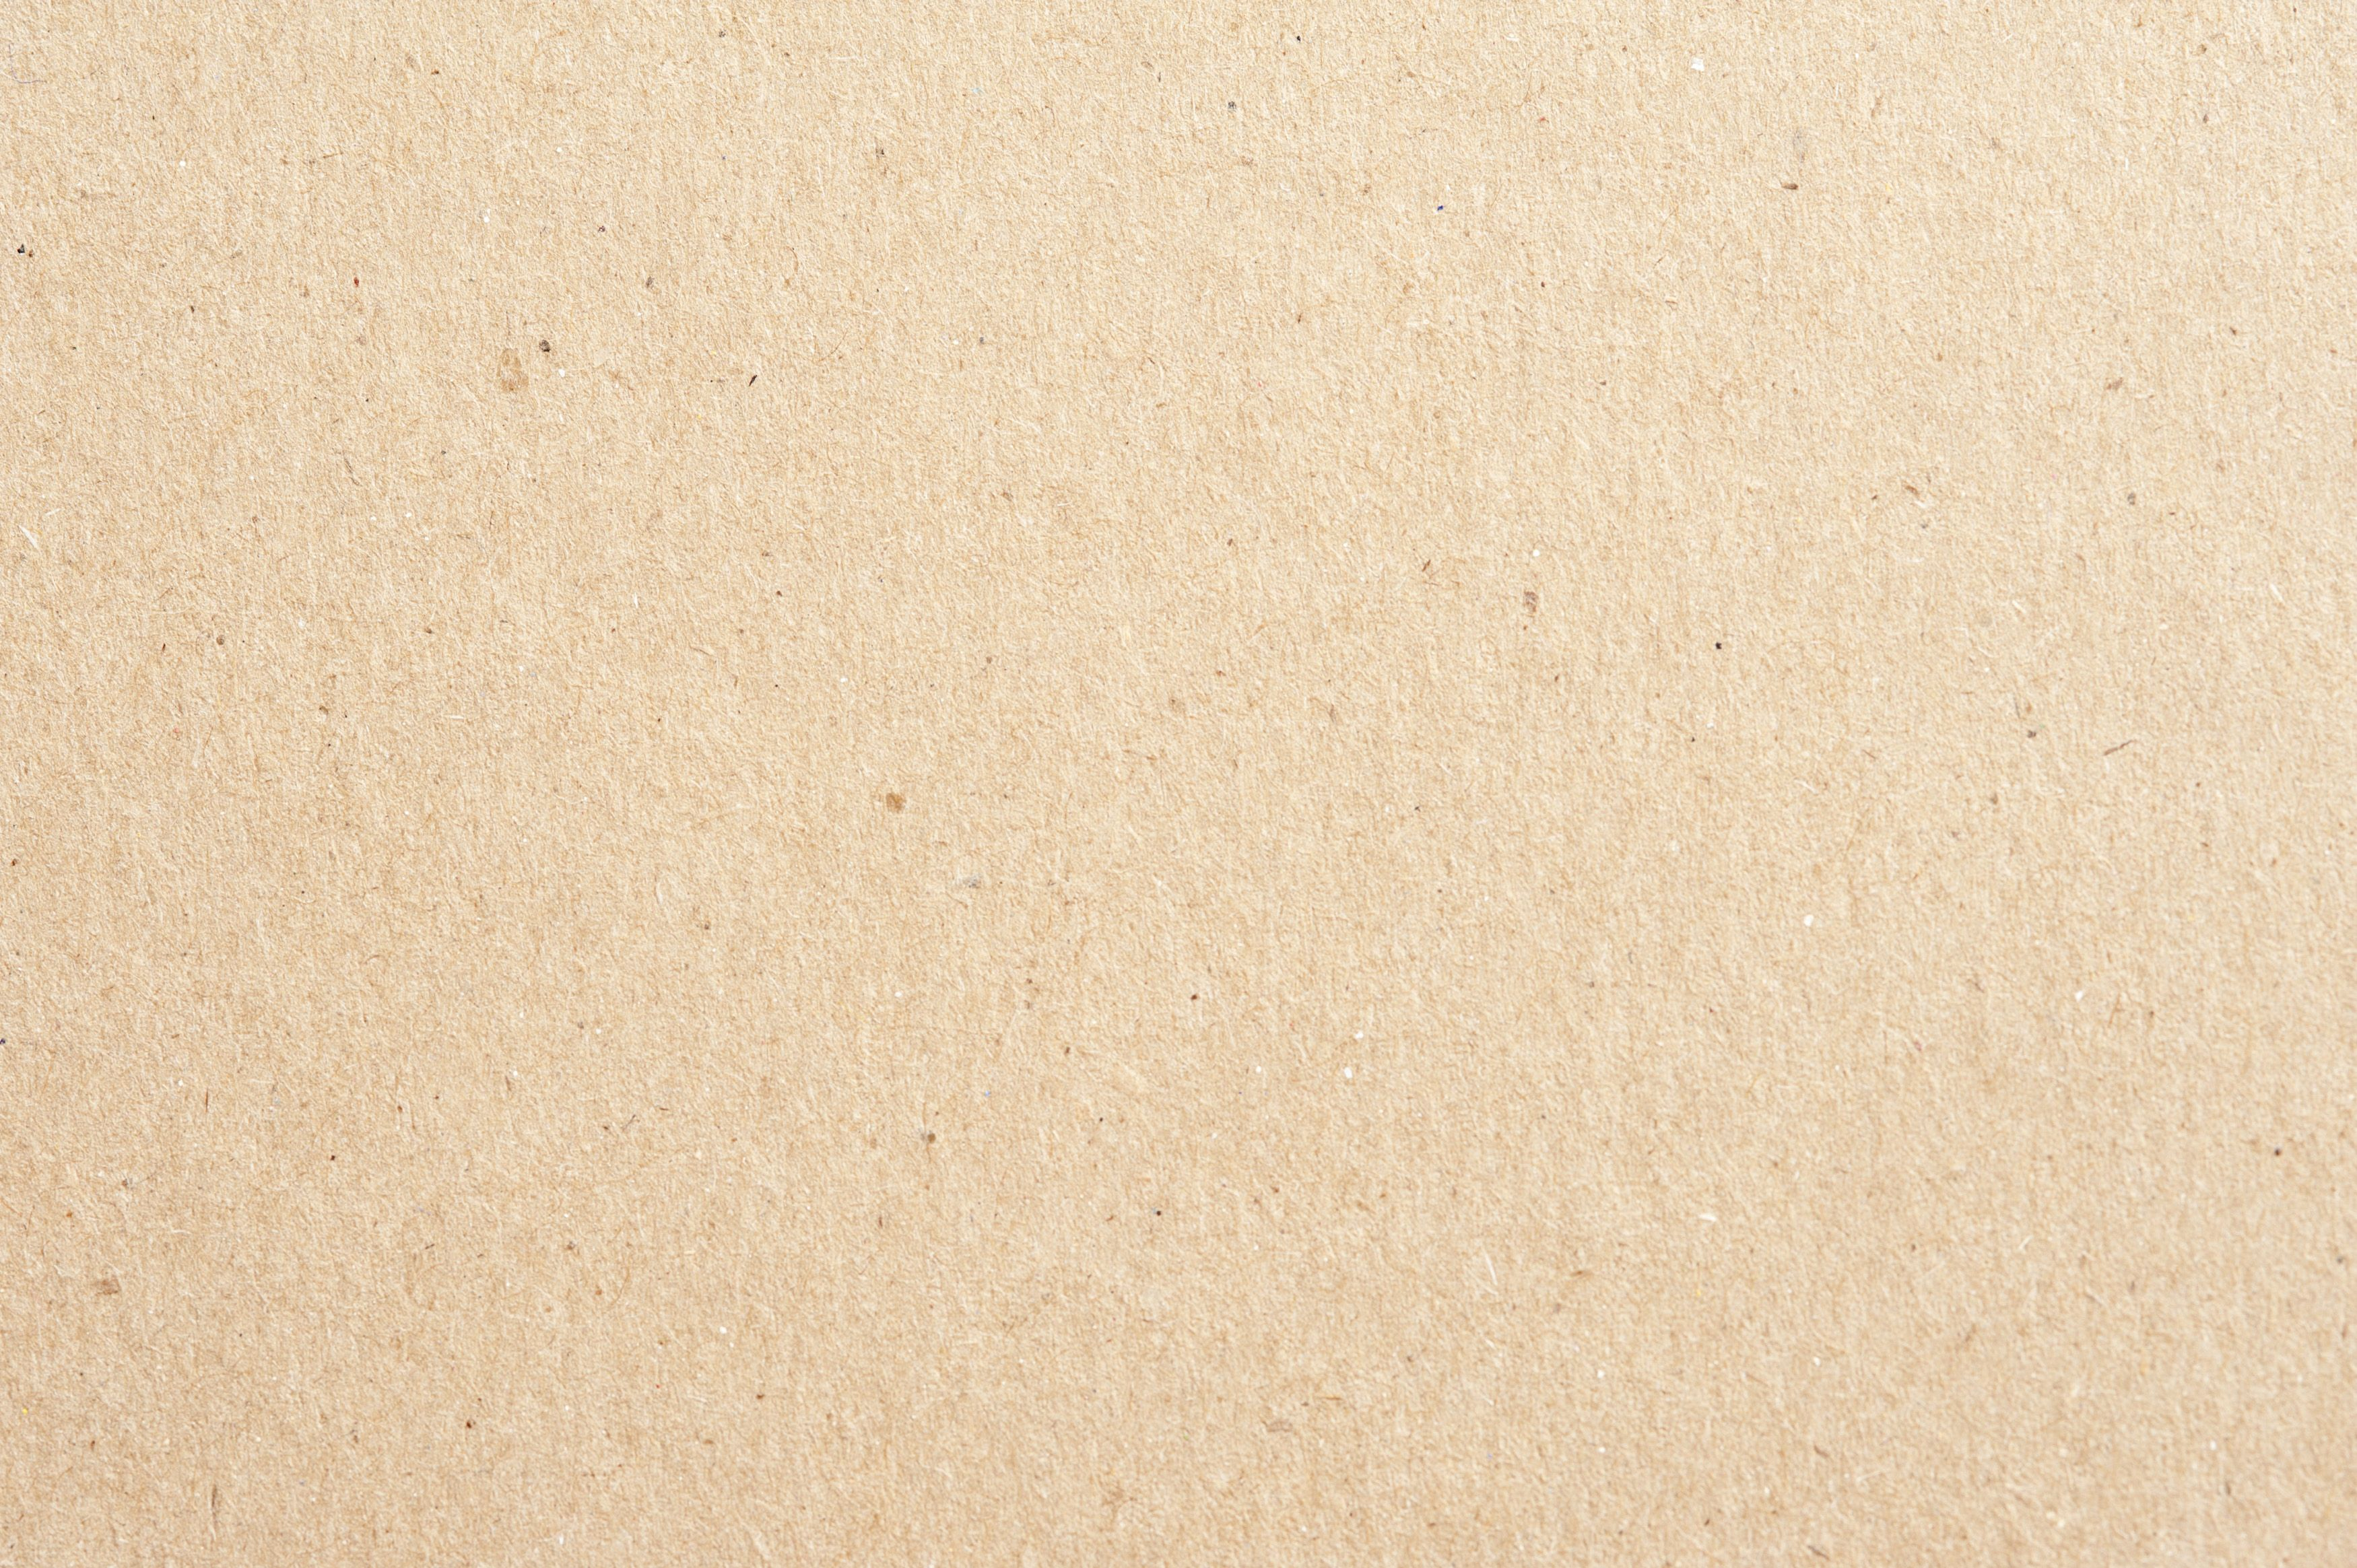 Download Image Of Light Brown Background Cardboard Texture